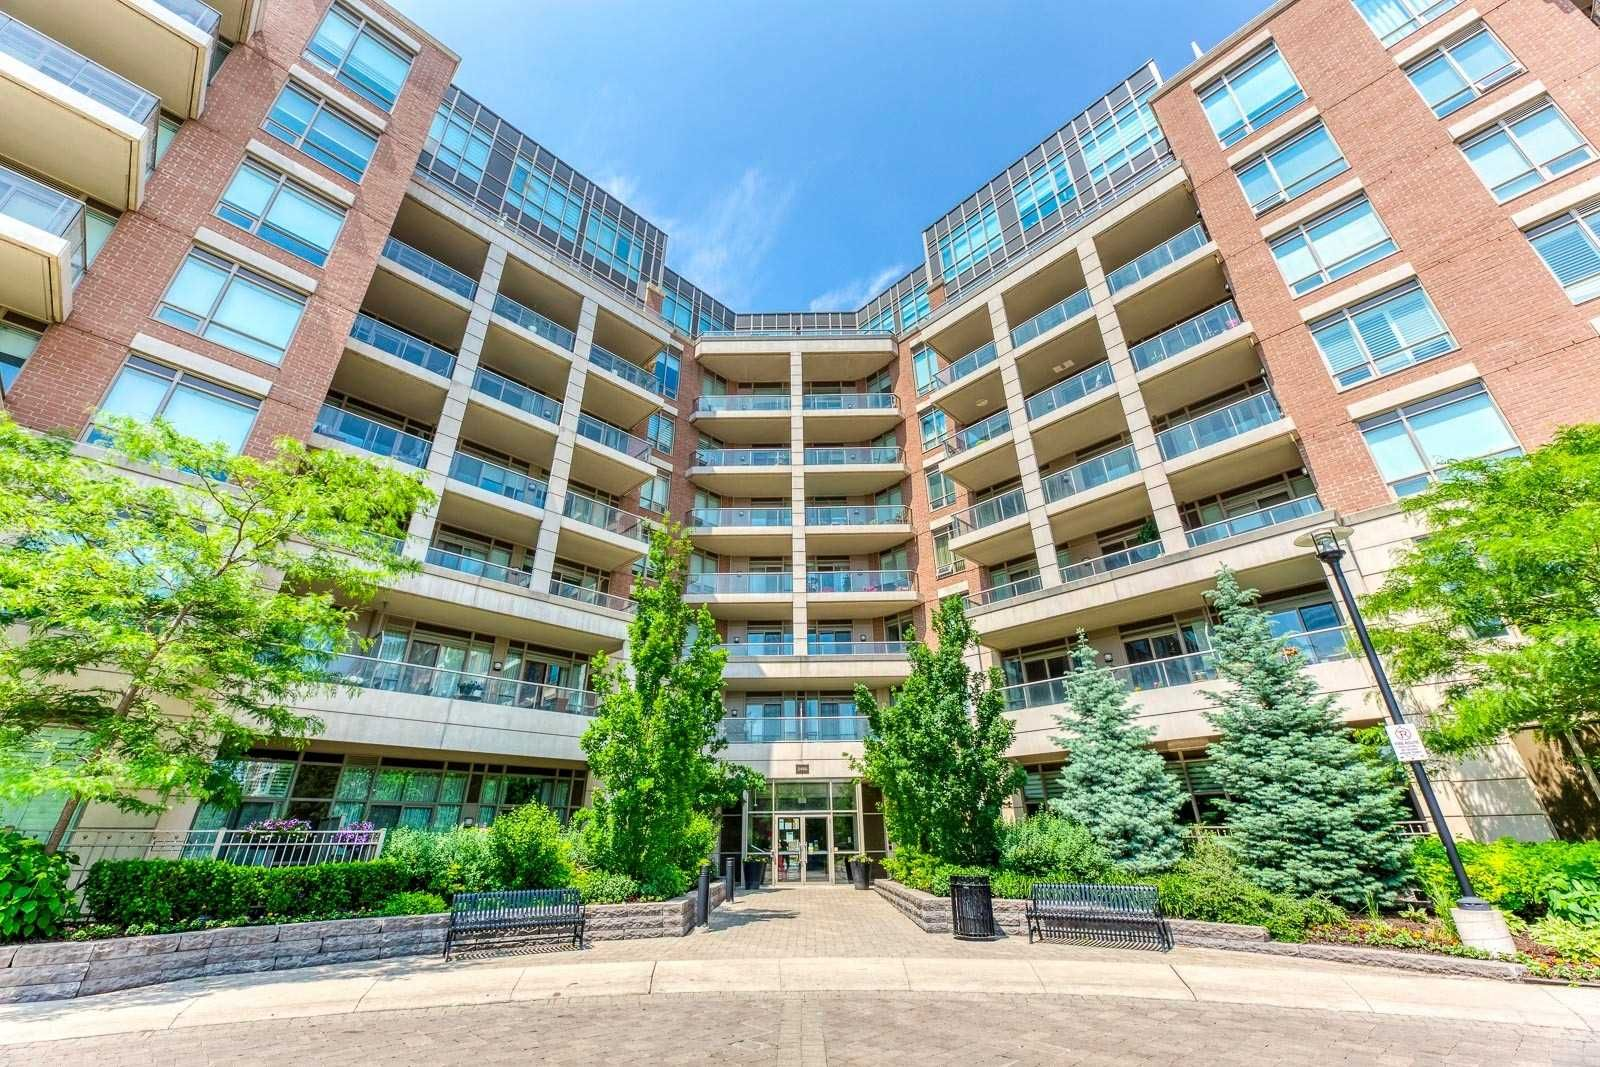 2480 Prince Michael Dr, unit 434 for sale in Toronto - image #1